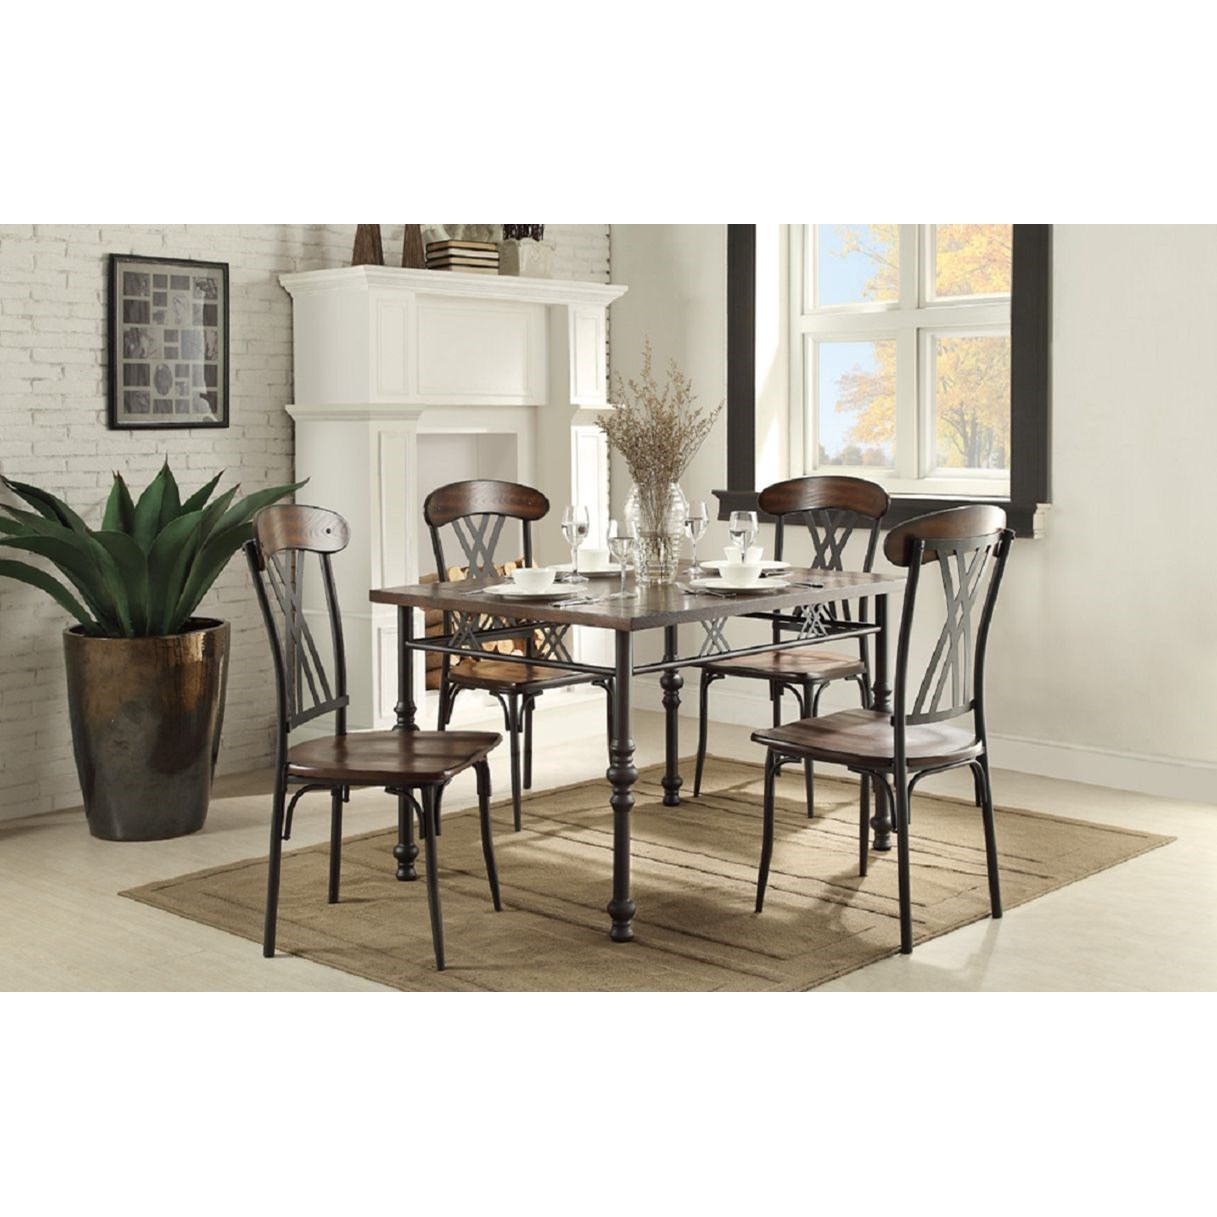 Homelegance Loyalton Transitional Kitchen Table And Chair Set Simply Home By Lindy S Dining 5 Piece Sets